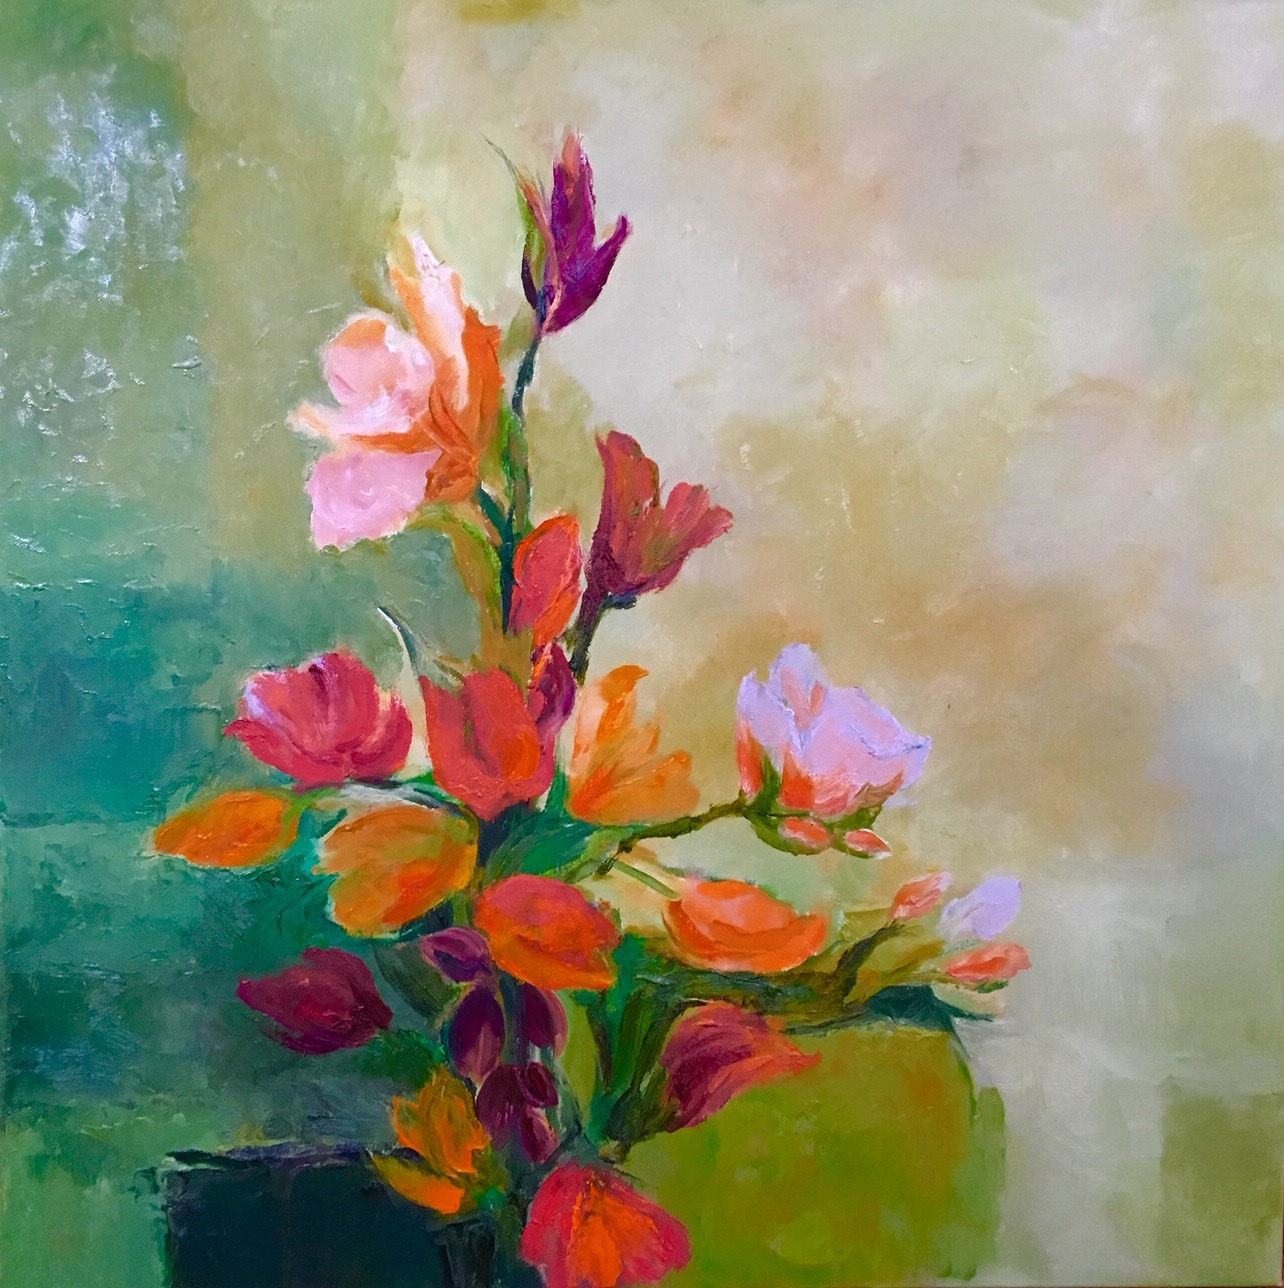 FlowersOnGreen, 24 x 24 inches